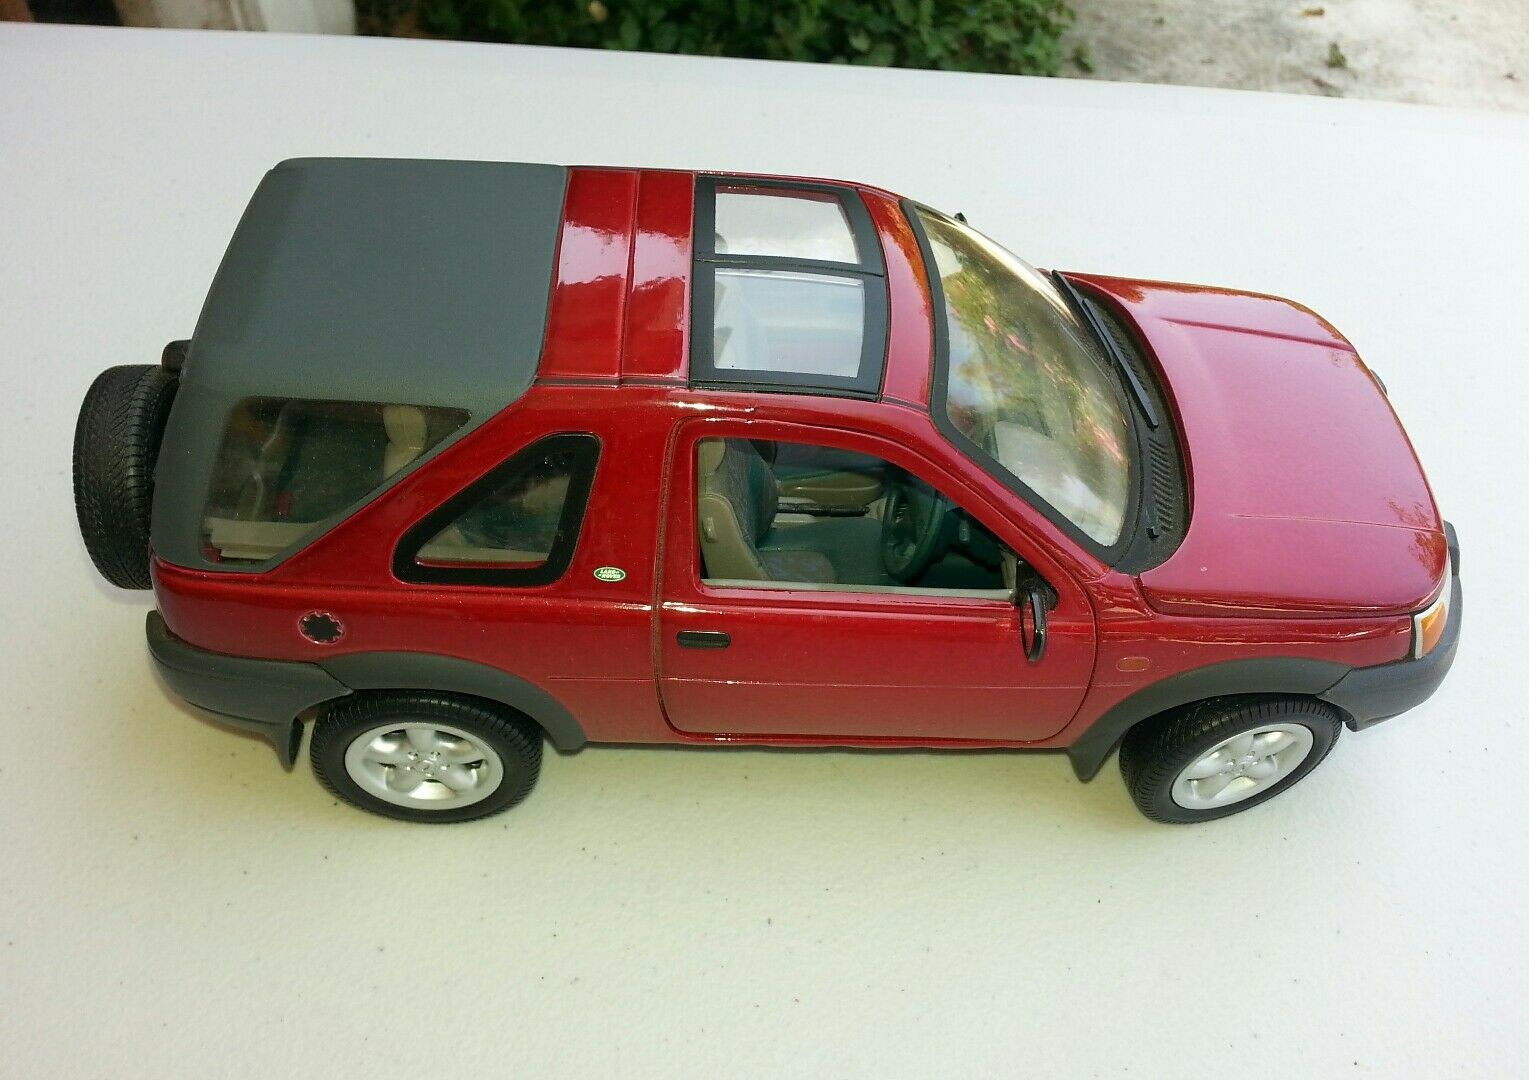 Diecast 1/18 model vehicle Land Rover Freelander in rosso by Ertl